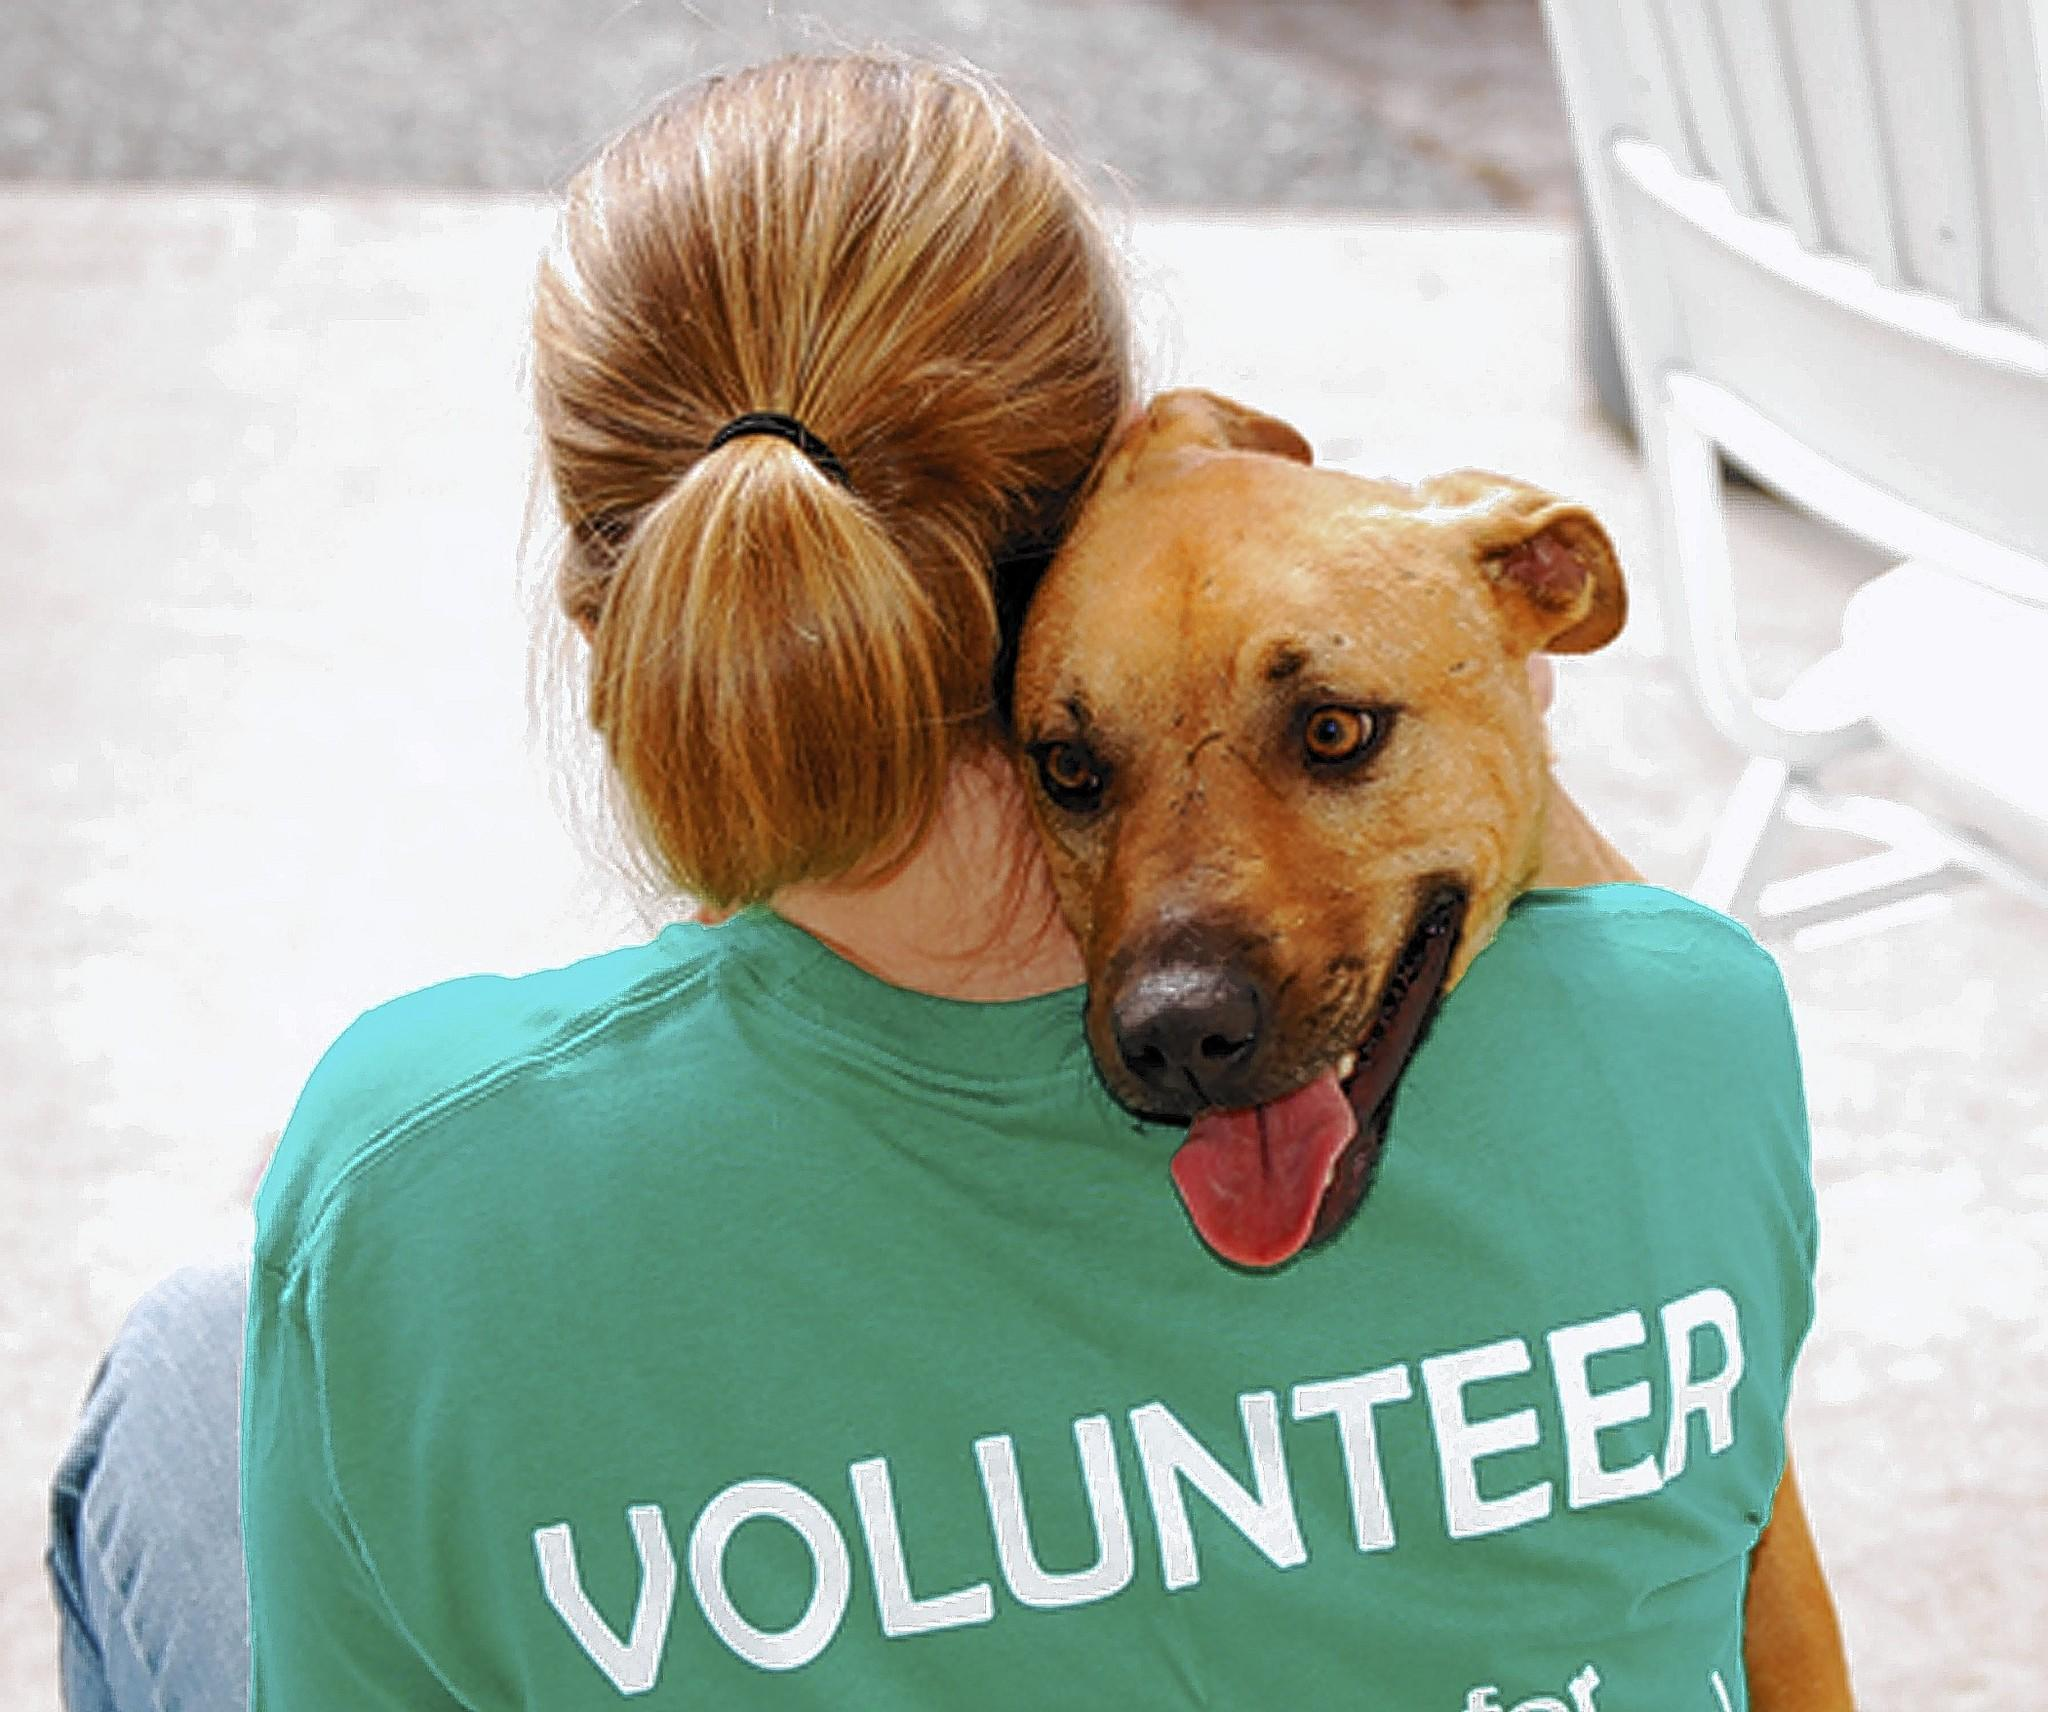 Remember selfless local volunteers who devote countless hours and often personal resources to care for animals. Supporting local groups either through contributions or volunteer work is vital to their mission.